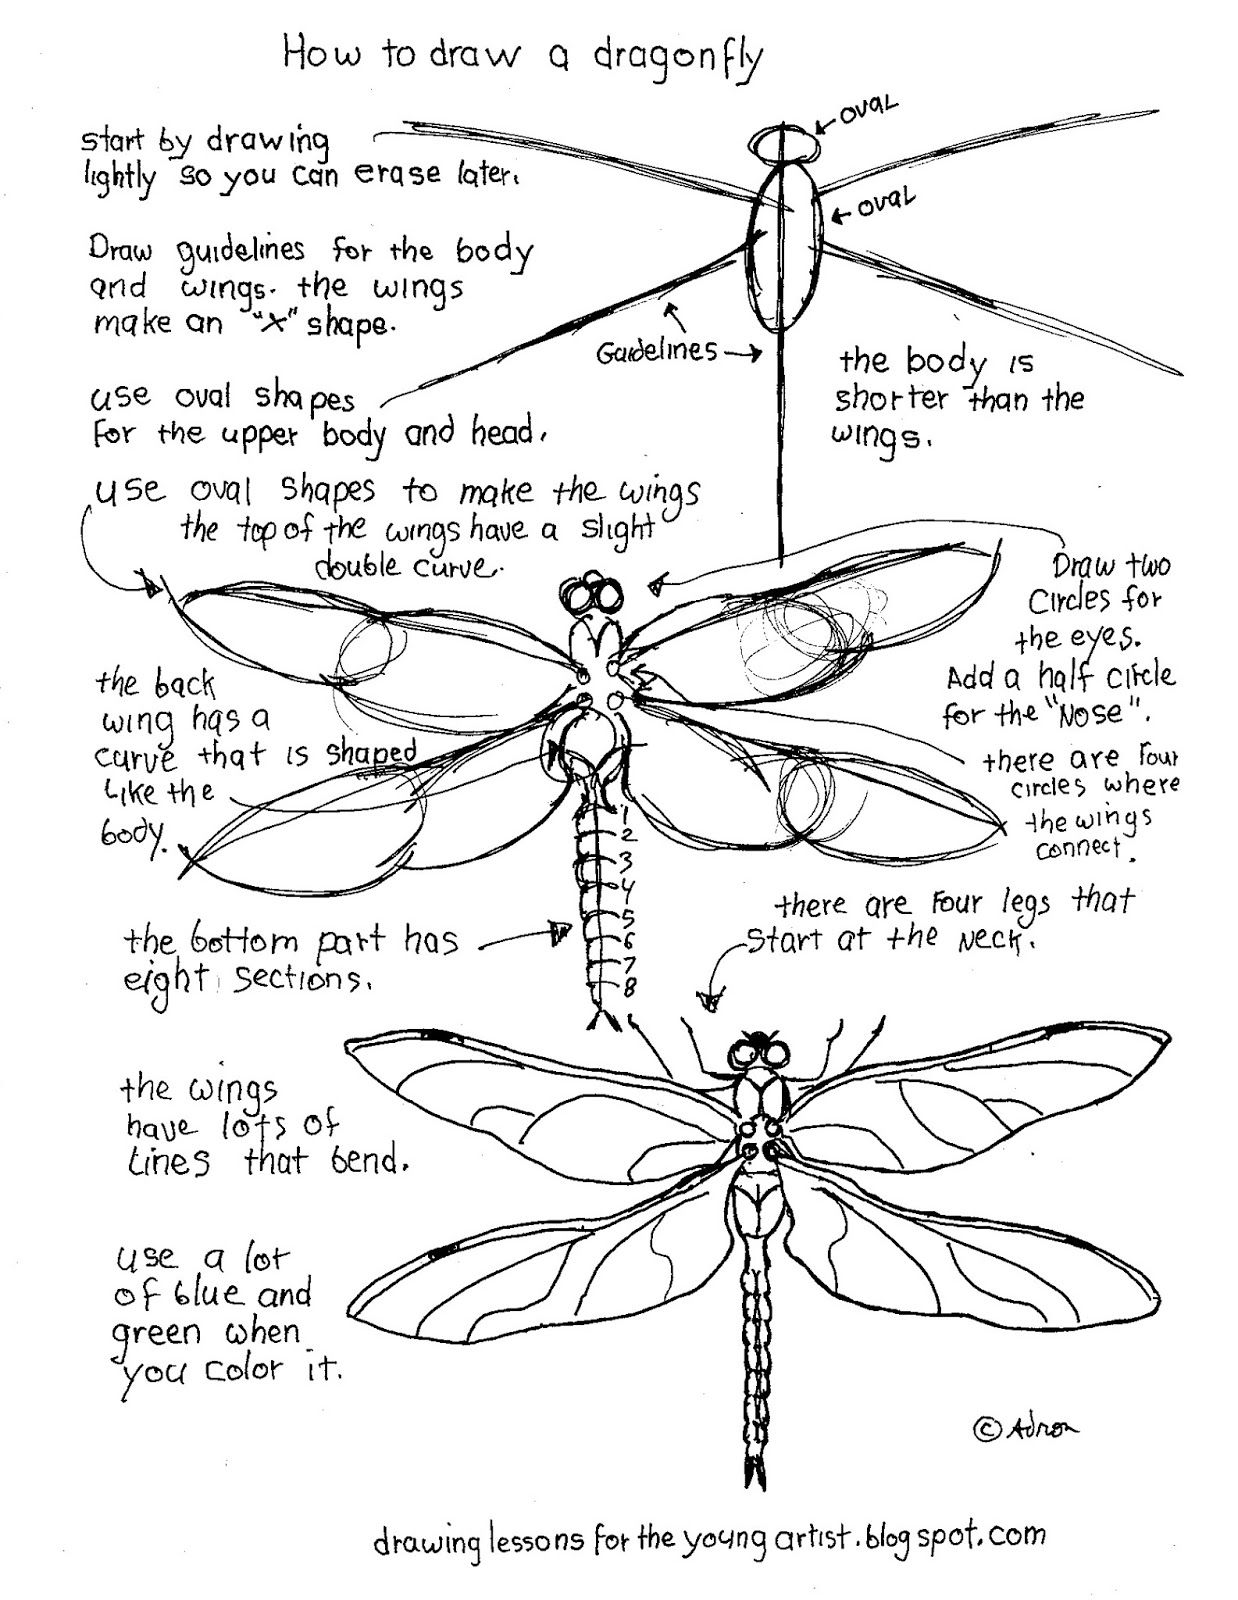 small resolution of how to draw worksheets for the young artist printable how to draw a dragonfly worksheet there are project notes at the blog